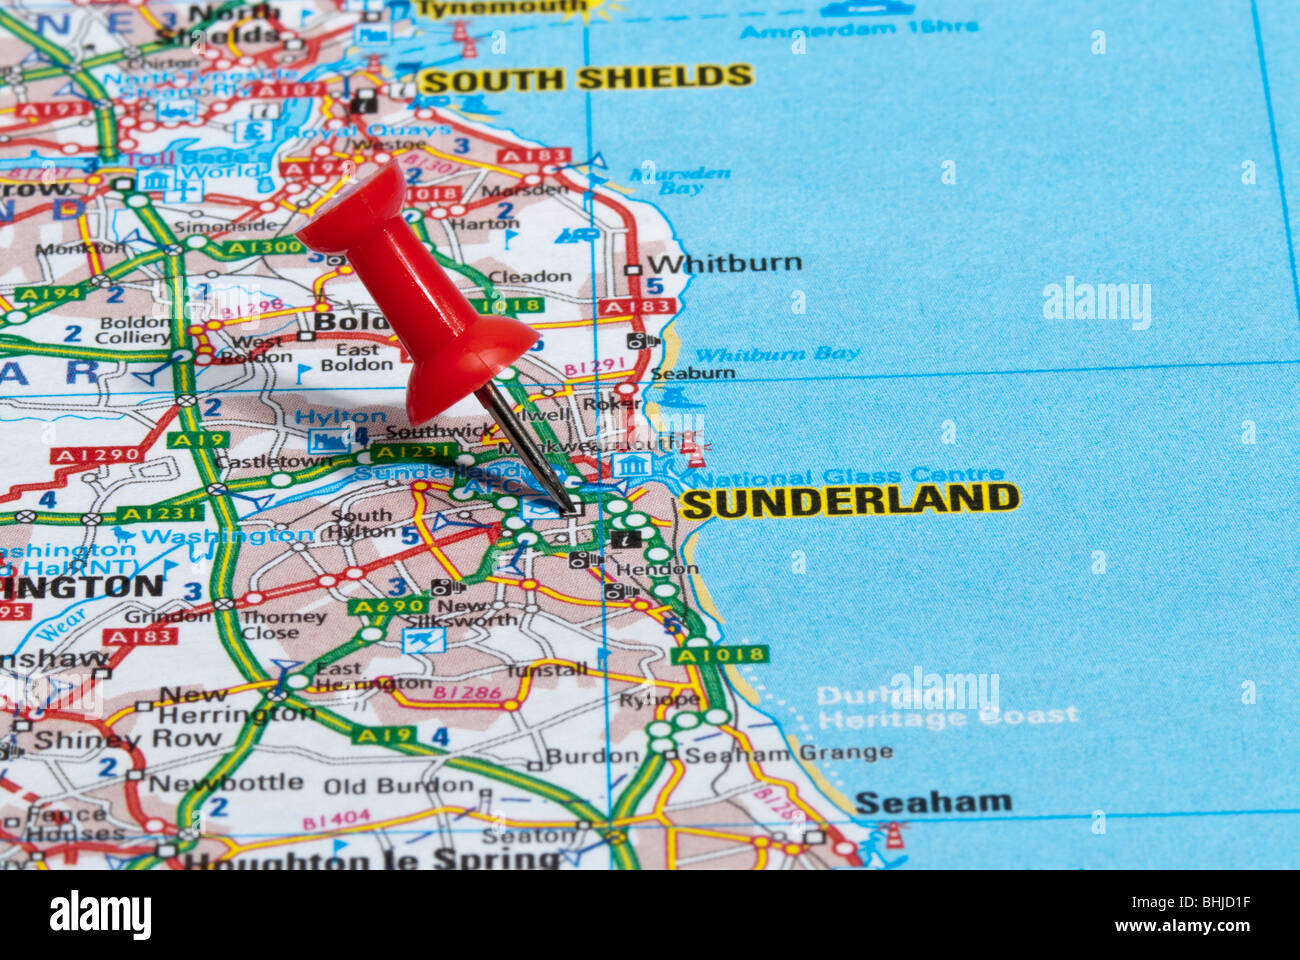 red map pin in road map pointing to city of Sunderland Stock Photo ...